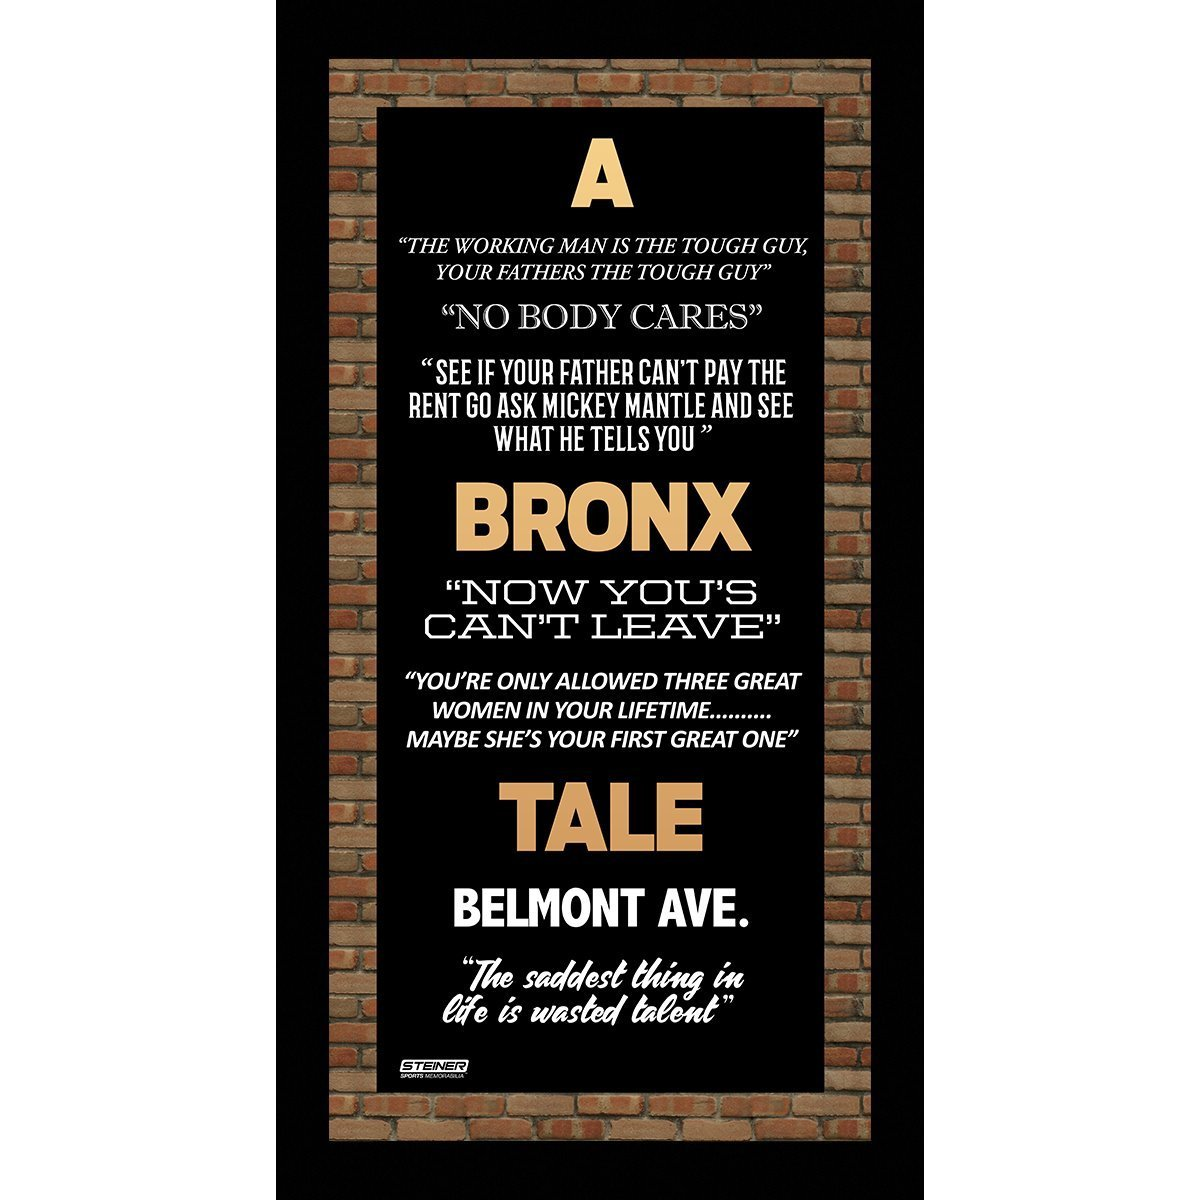 A bronx tale quotes 16 x 32 framed subway sign other for Lista de precios subway